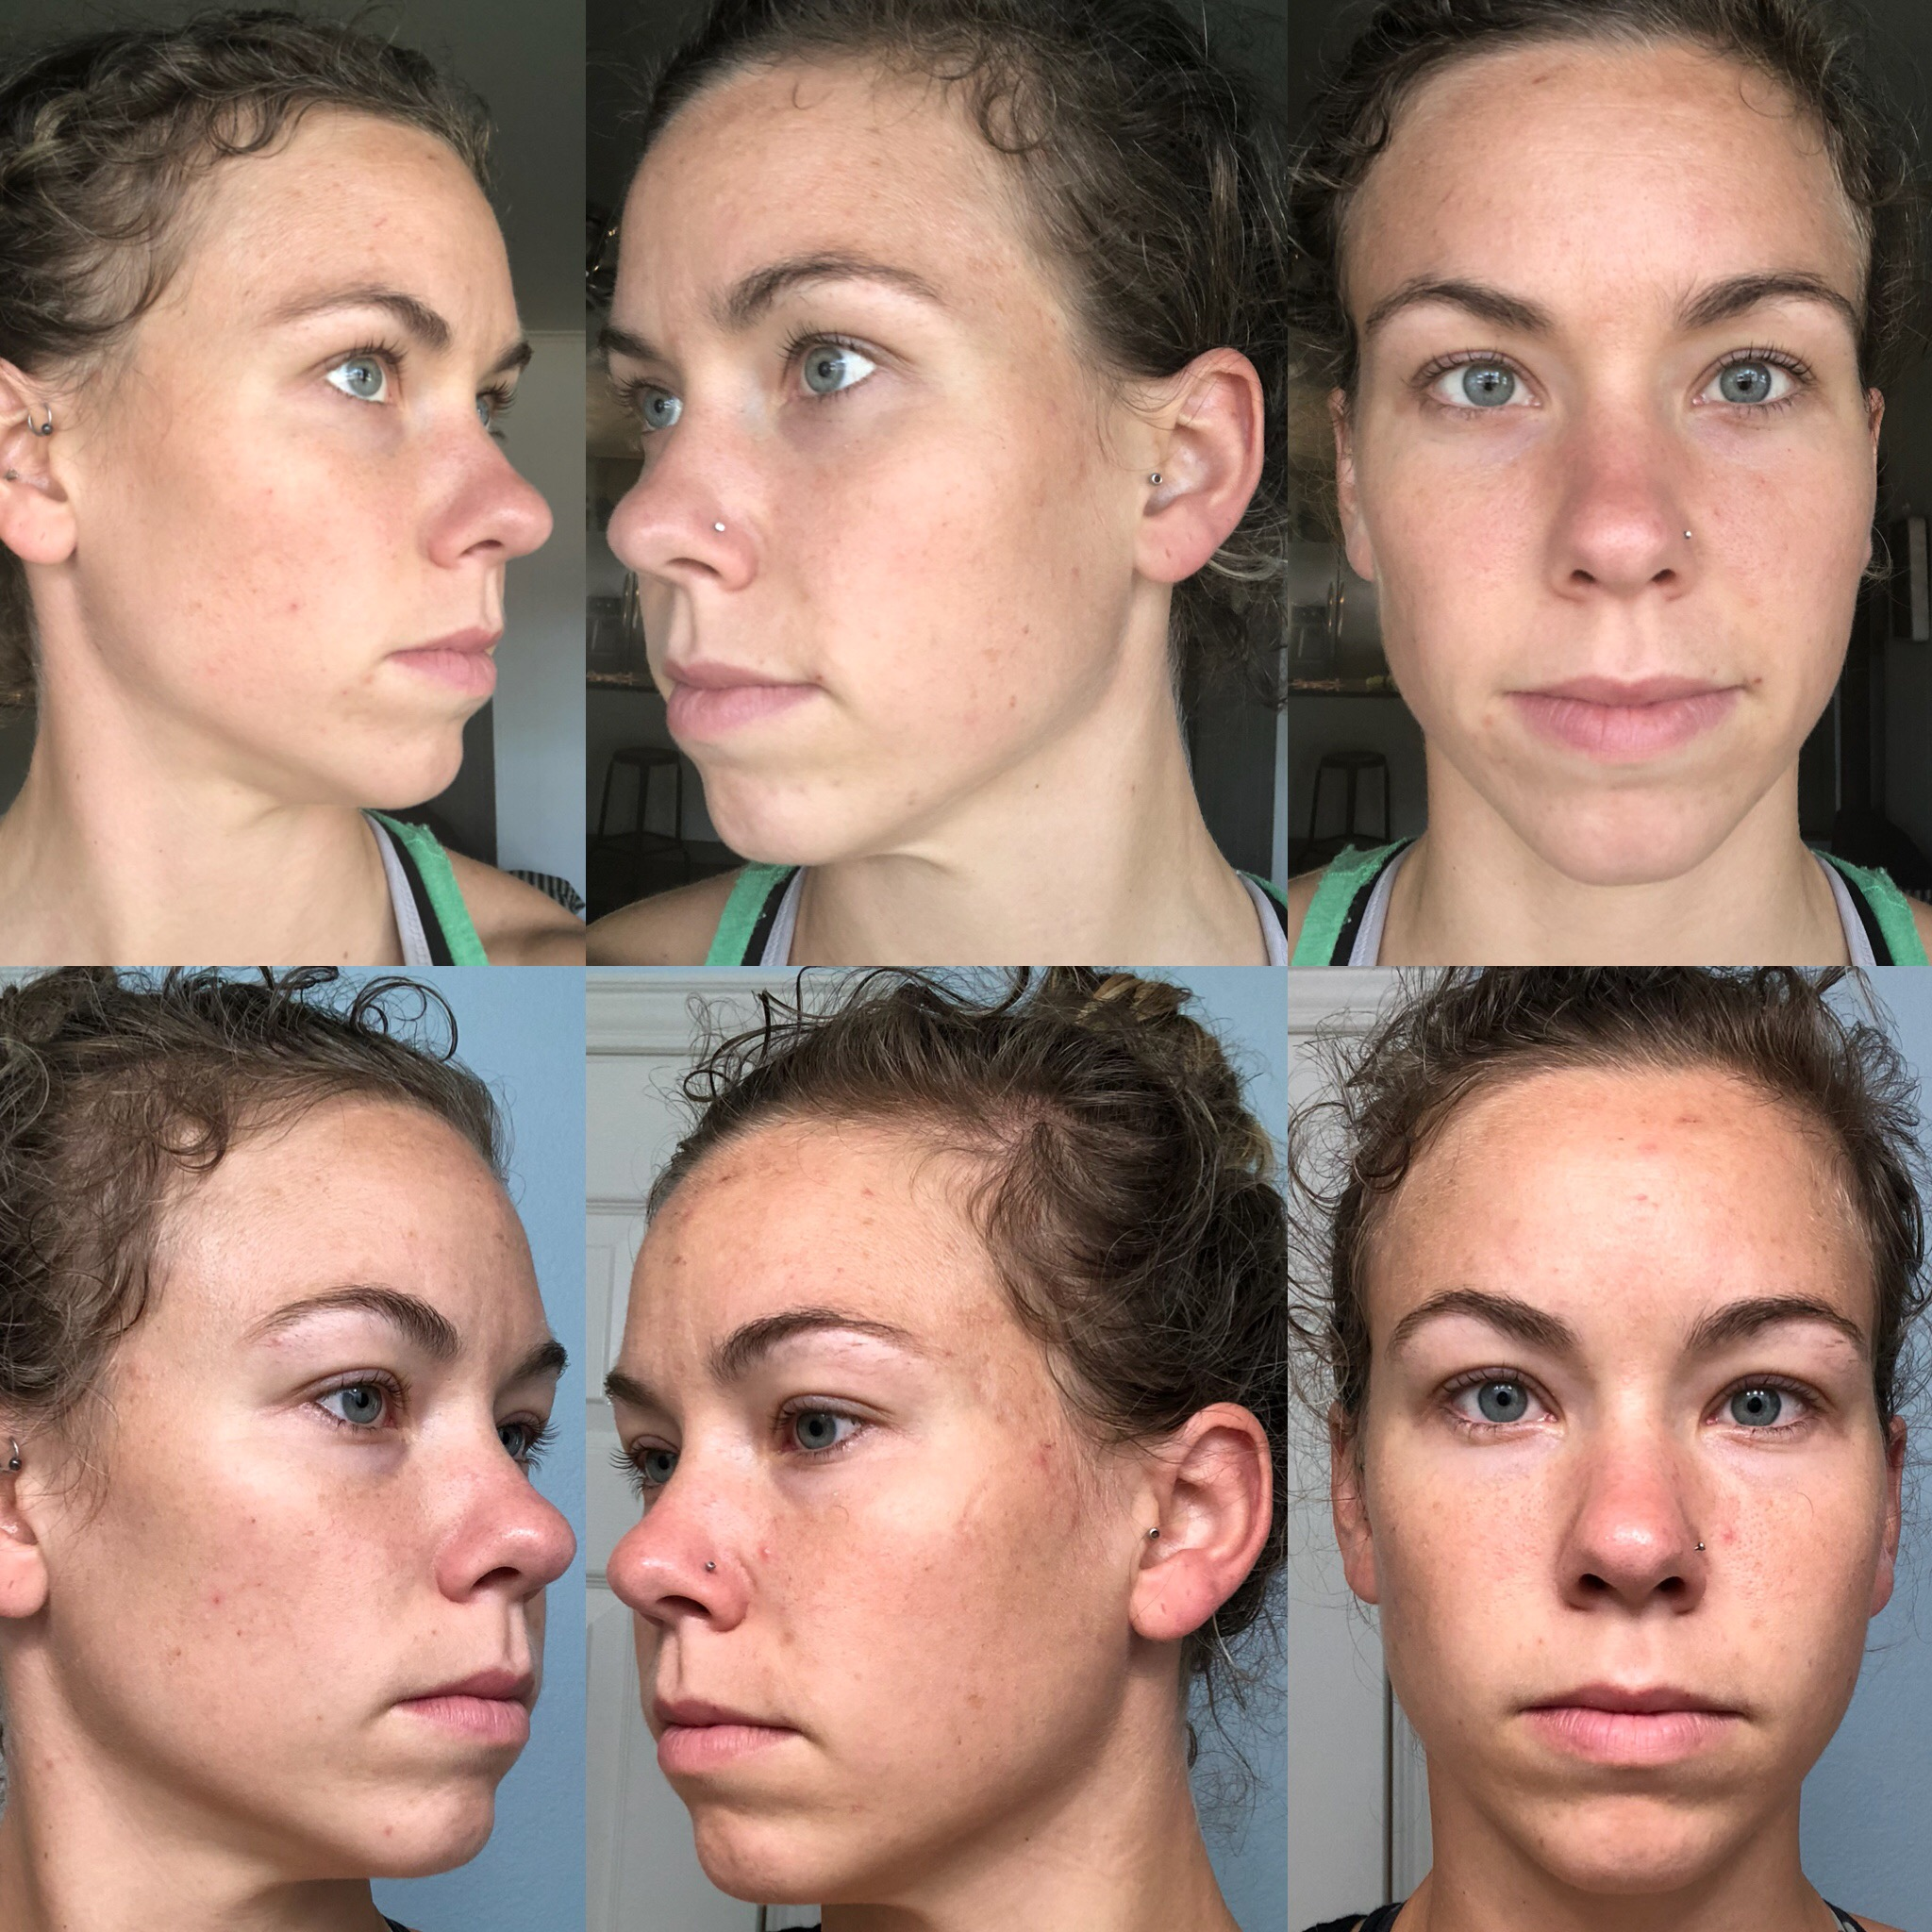 Beth - Before: Bottom RowAfter: Top RowBeth was apart of the first group of women who completed the 30 Days to Clearer Skin challenge! She followed both the nutrition plan & skin care regimen.